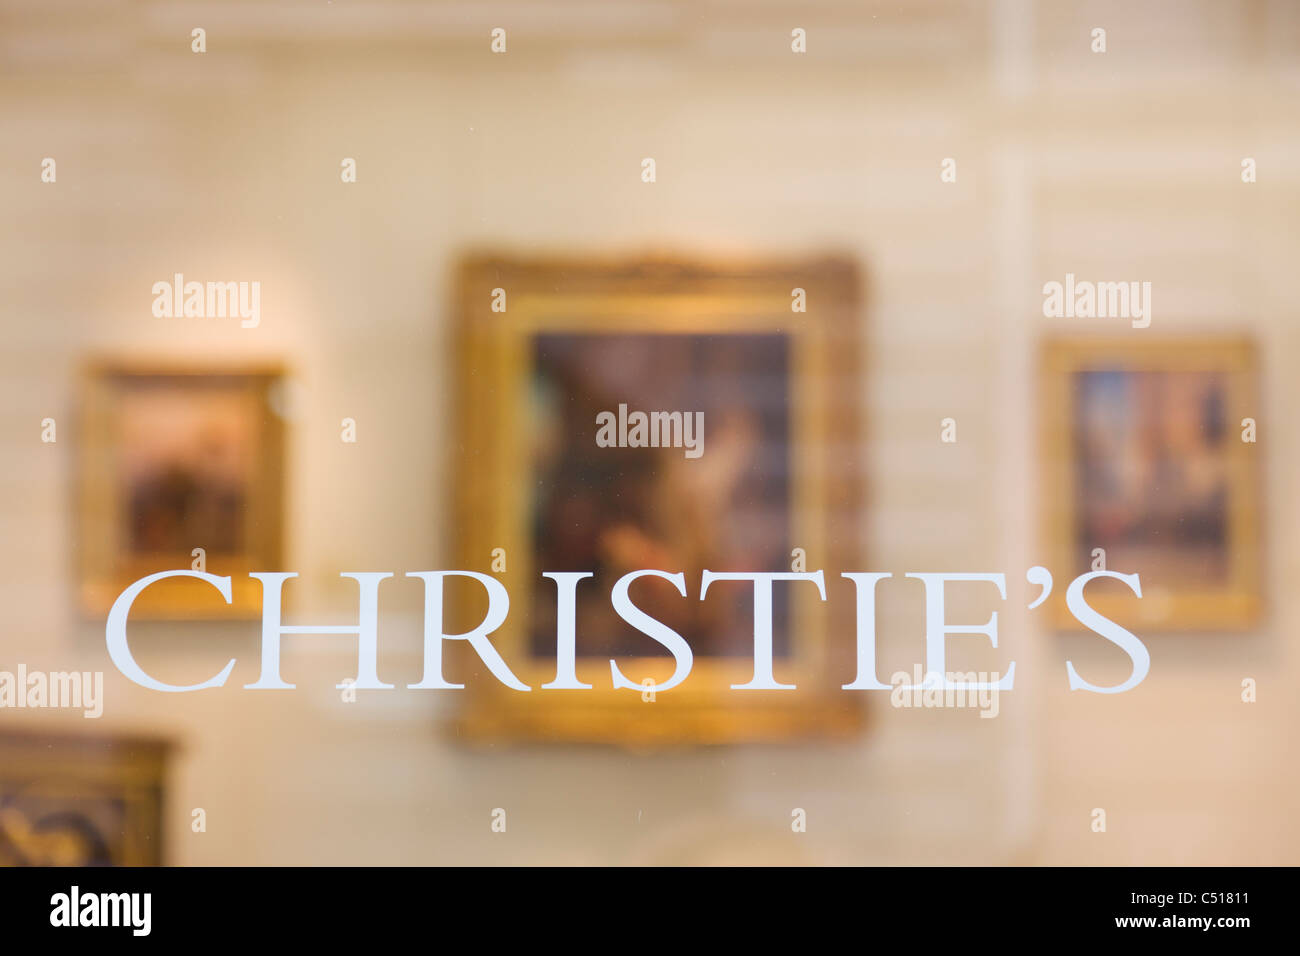 Christie's London - Stock Image